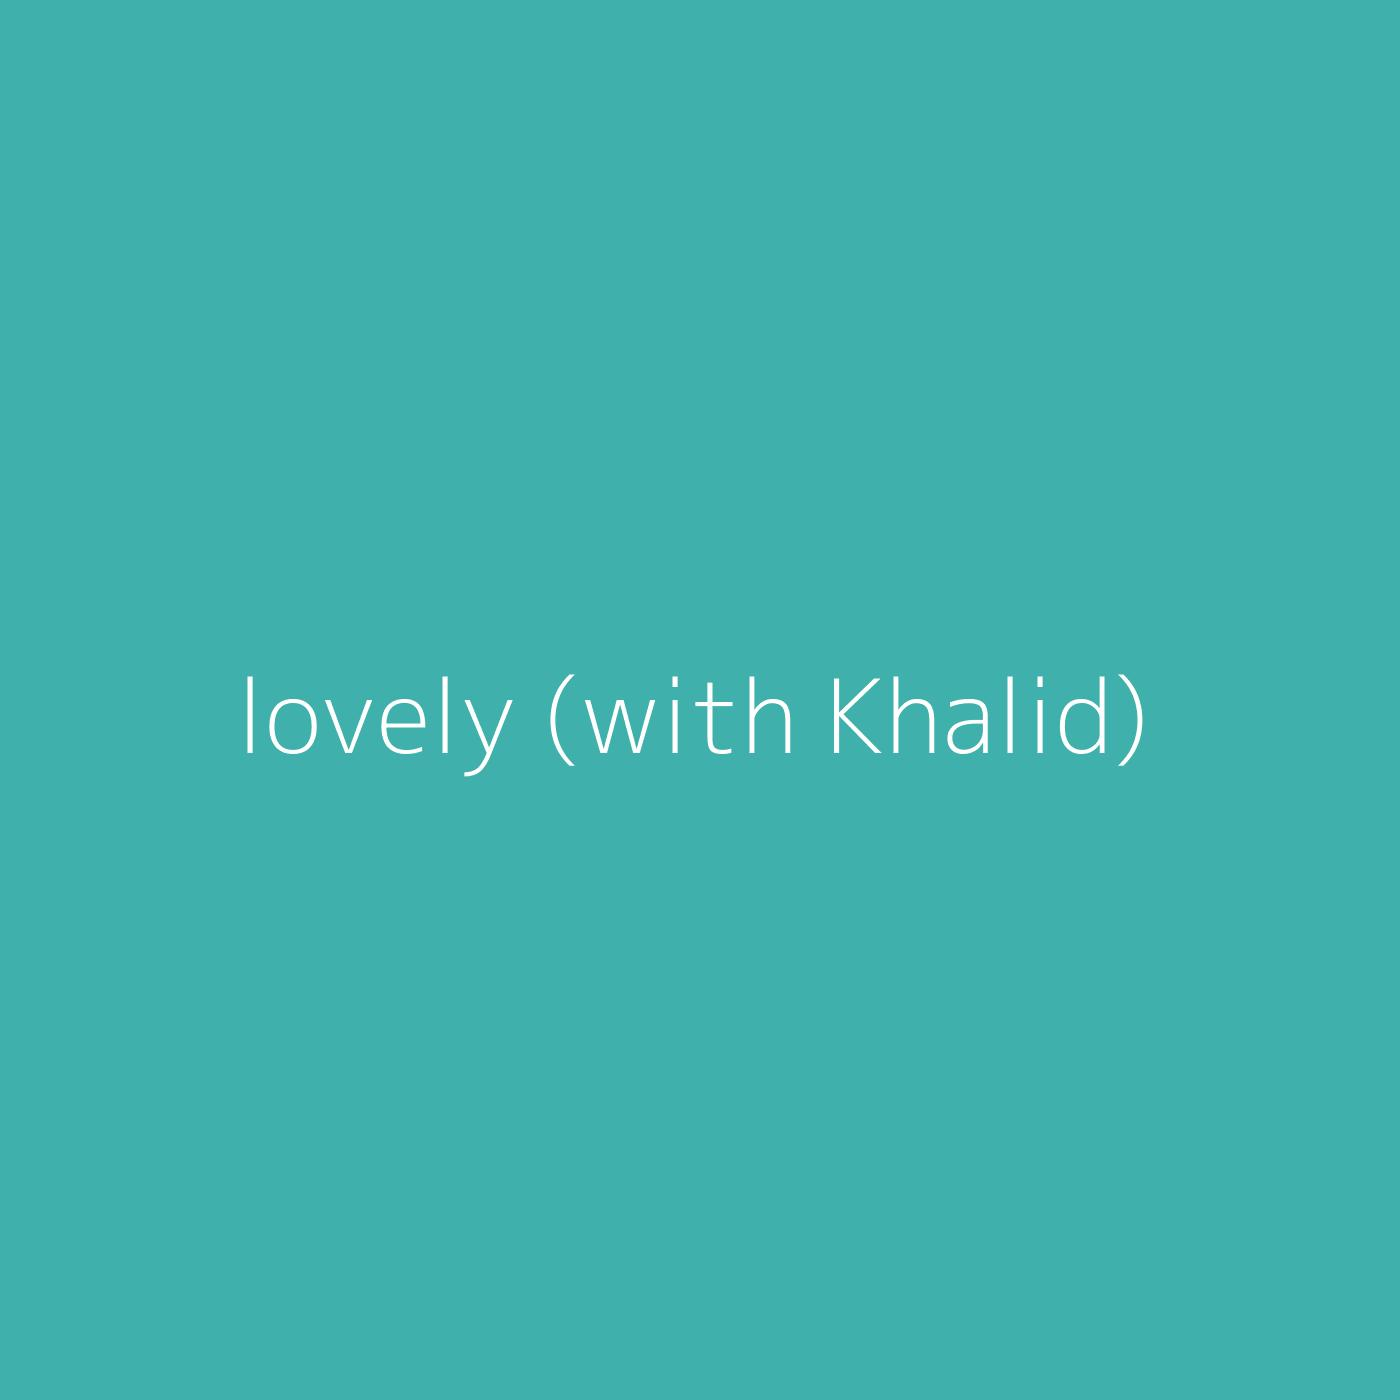 lovely (with Khalid) – Billie Eilish